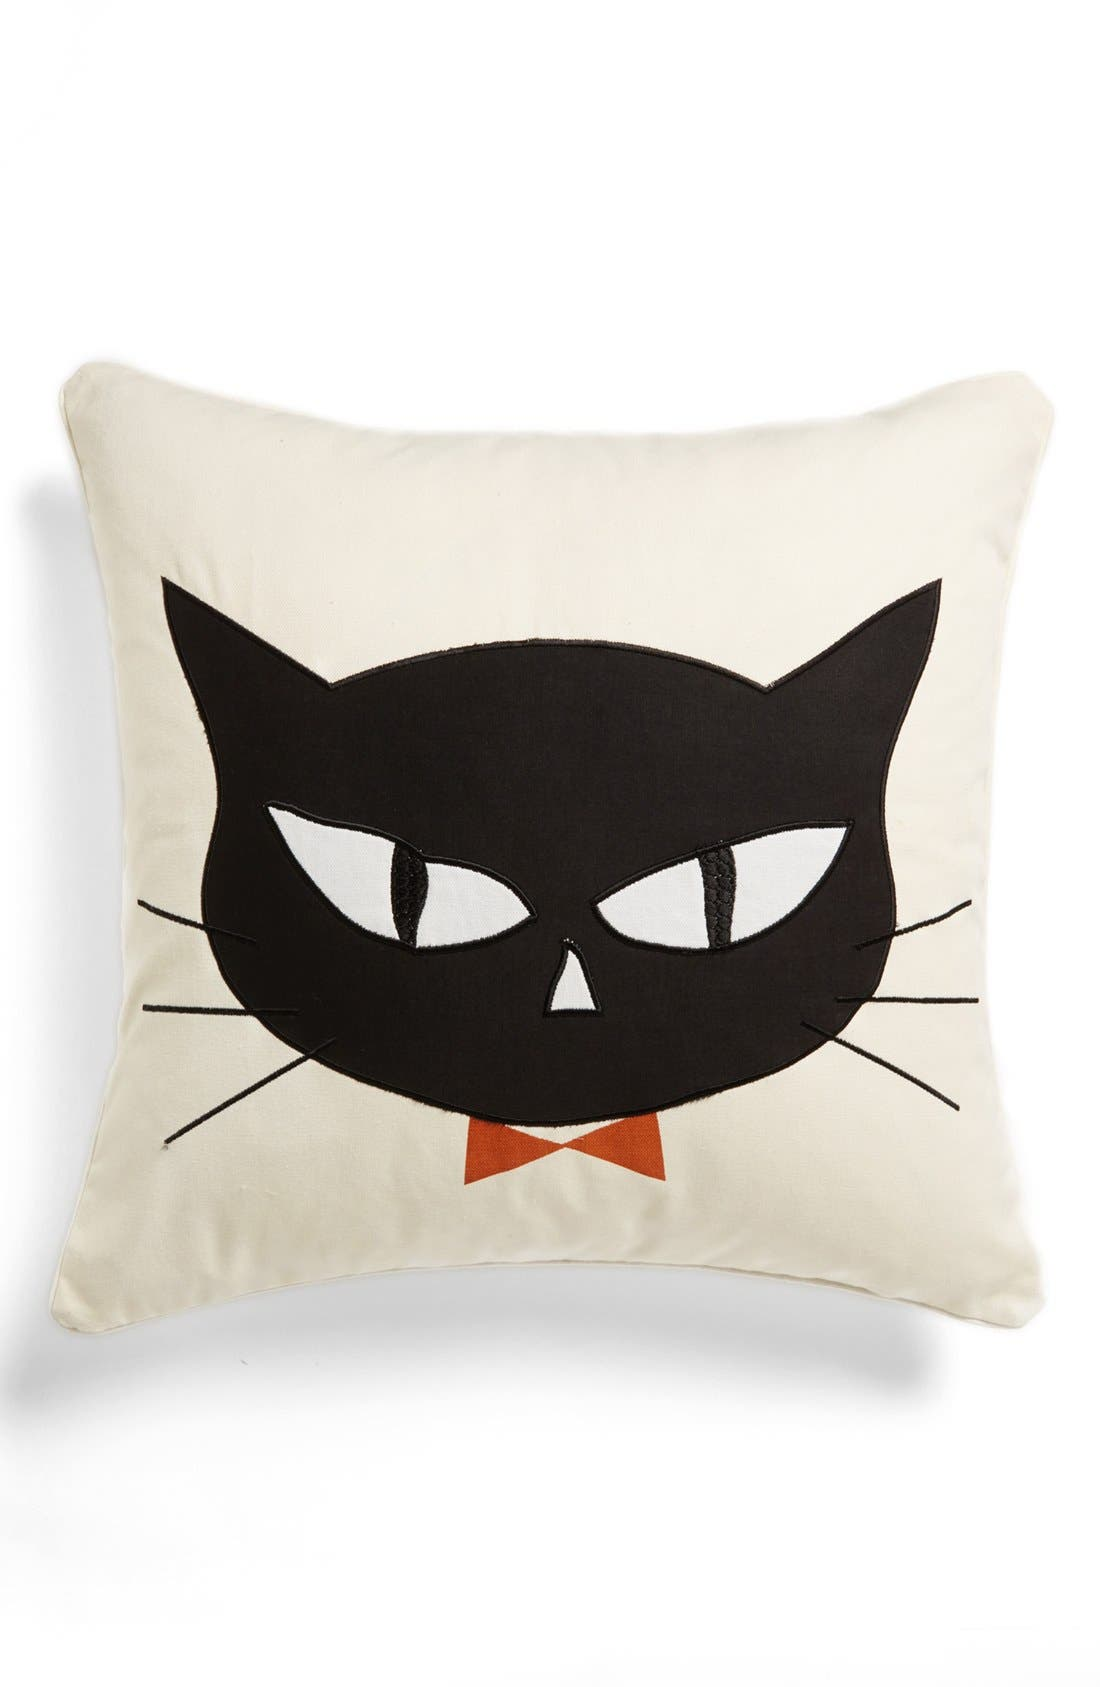 Alternate Image 1 Selected - Levtex 'Sophisticat' Pillow